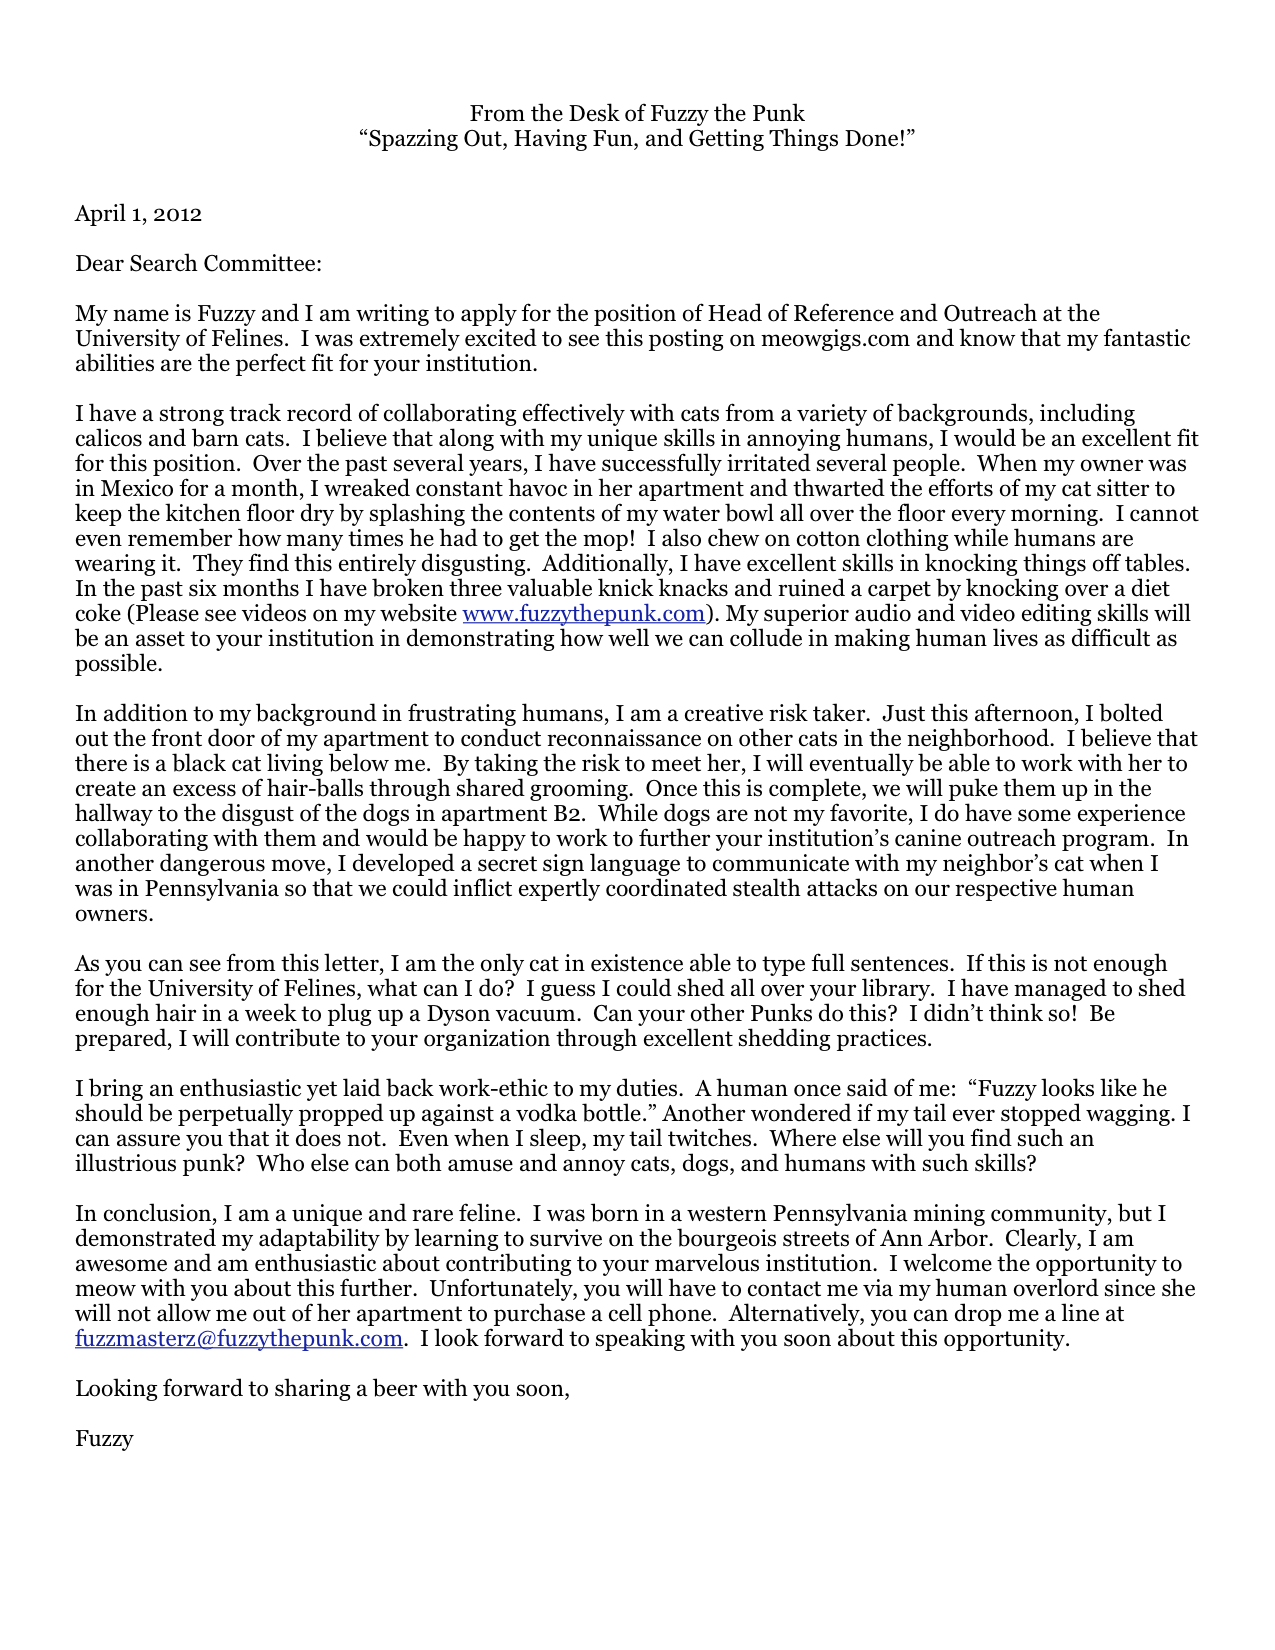 Cover Letter Greeting Examples Gallery Cover Letter Sample Professional Letter  Greeting Cover Letter Greeting Examples Pics Copycat Violence